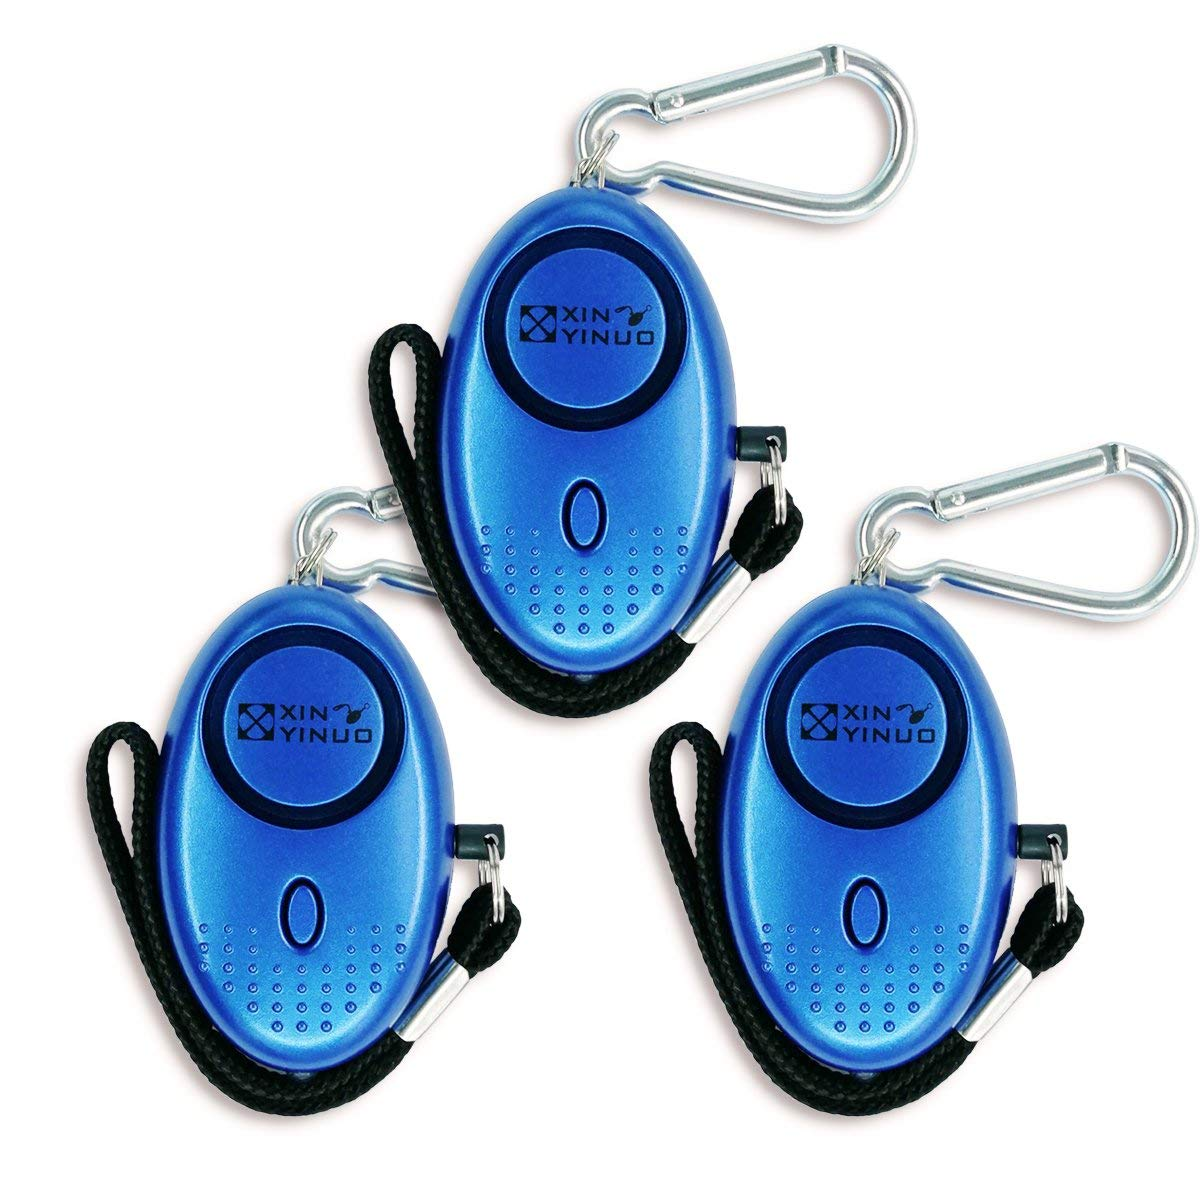 Consumer Electronics Devoted Newest Anti-rape Device Alarm Loud Alert Attack Panic Safety Personal Security Keychain For Kids Women Self-defense Supplies Accessories & Parts